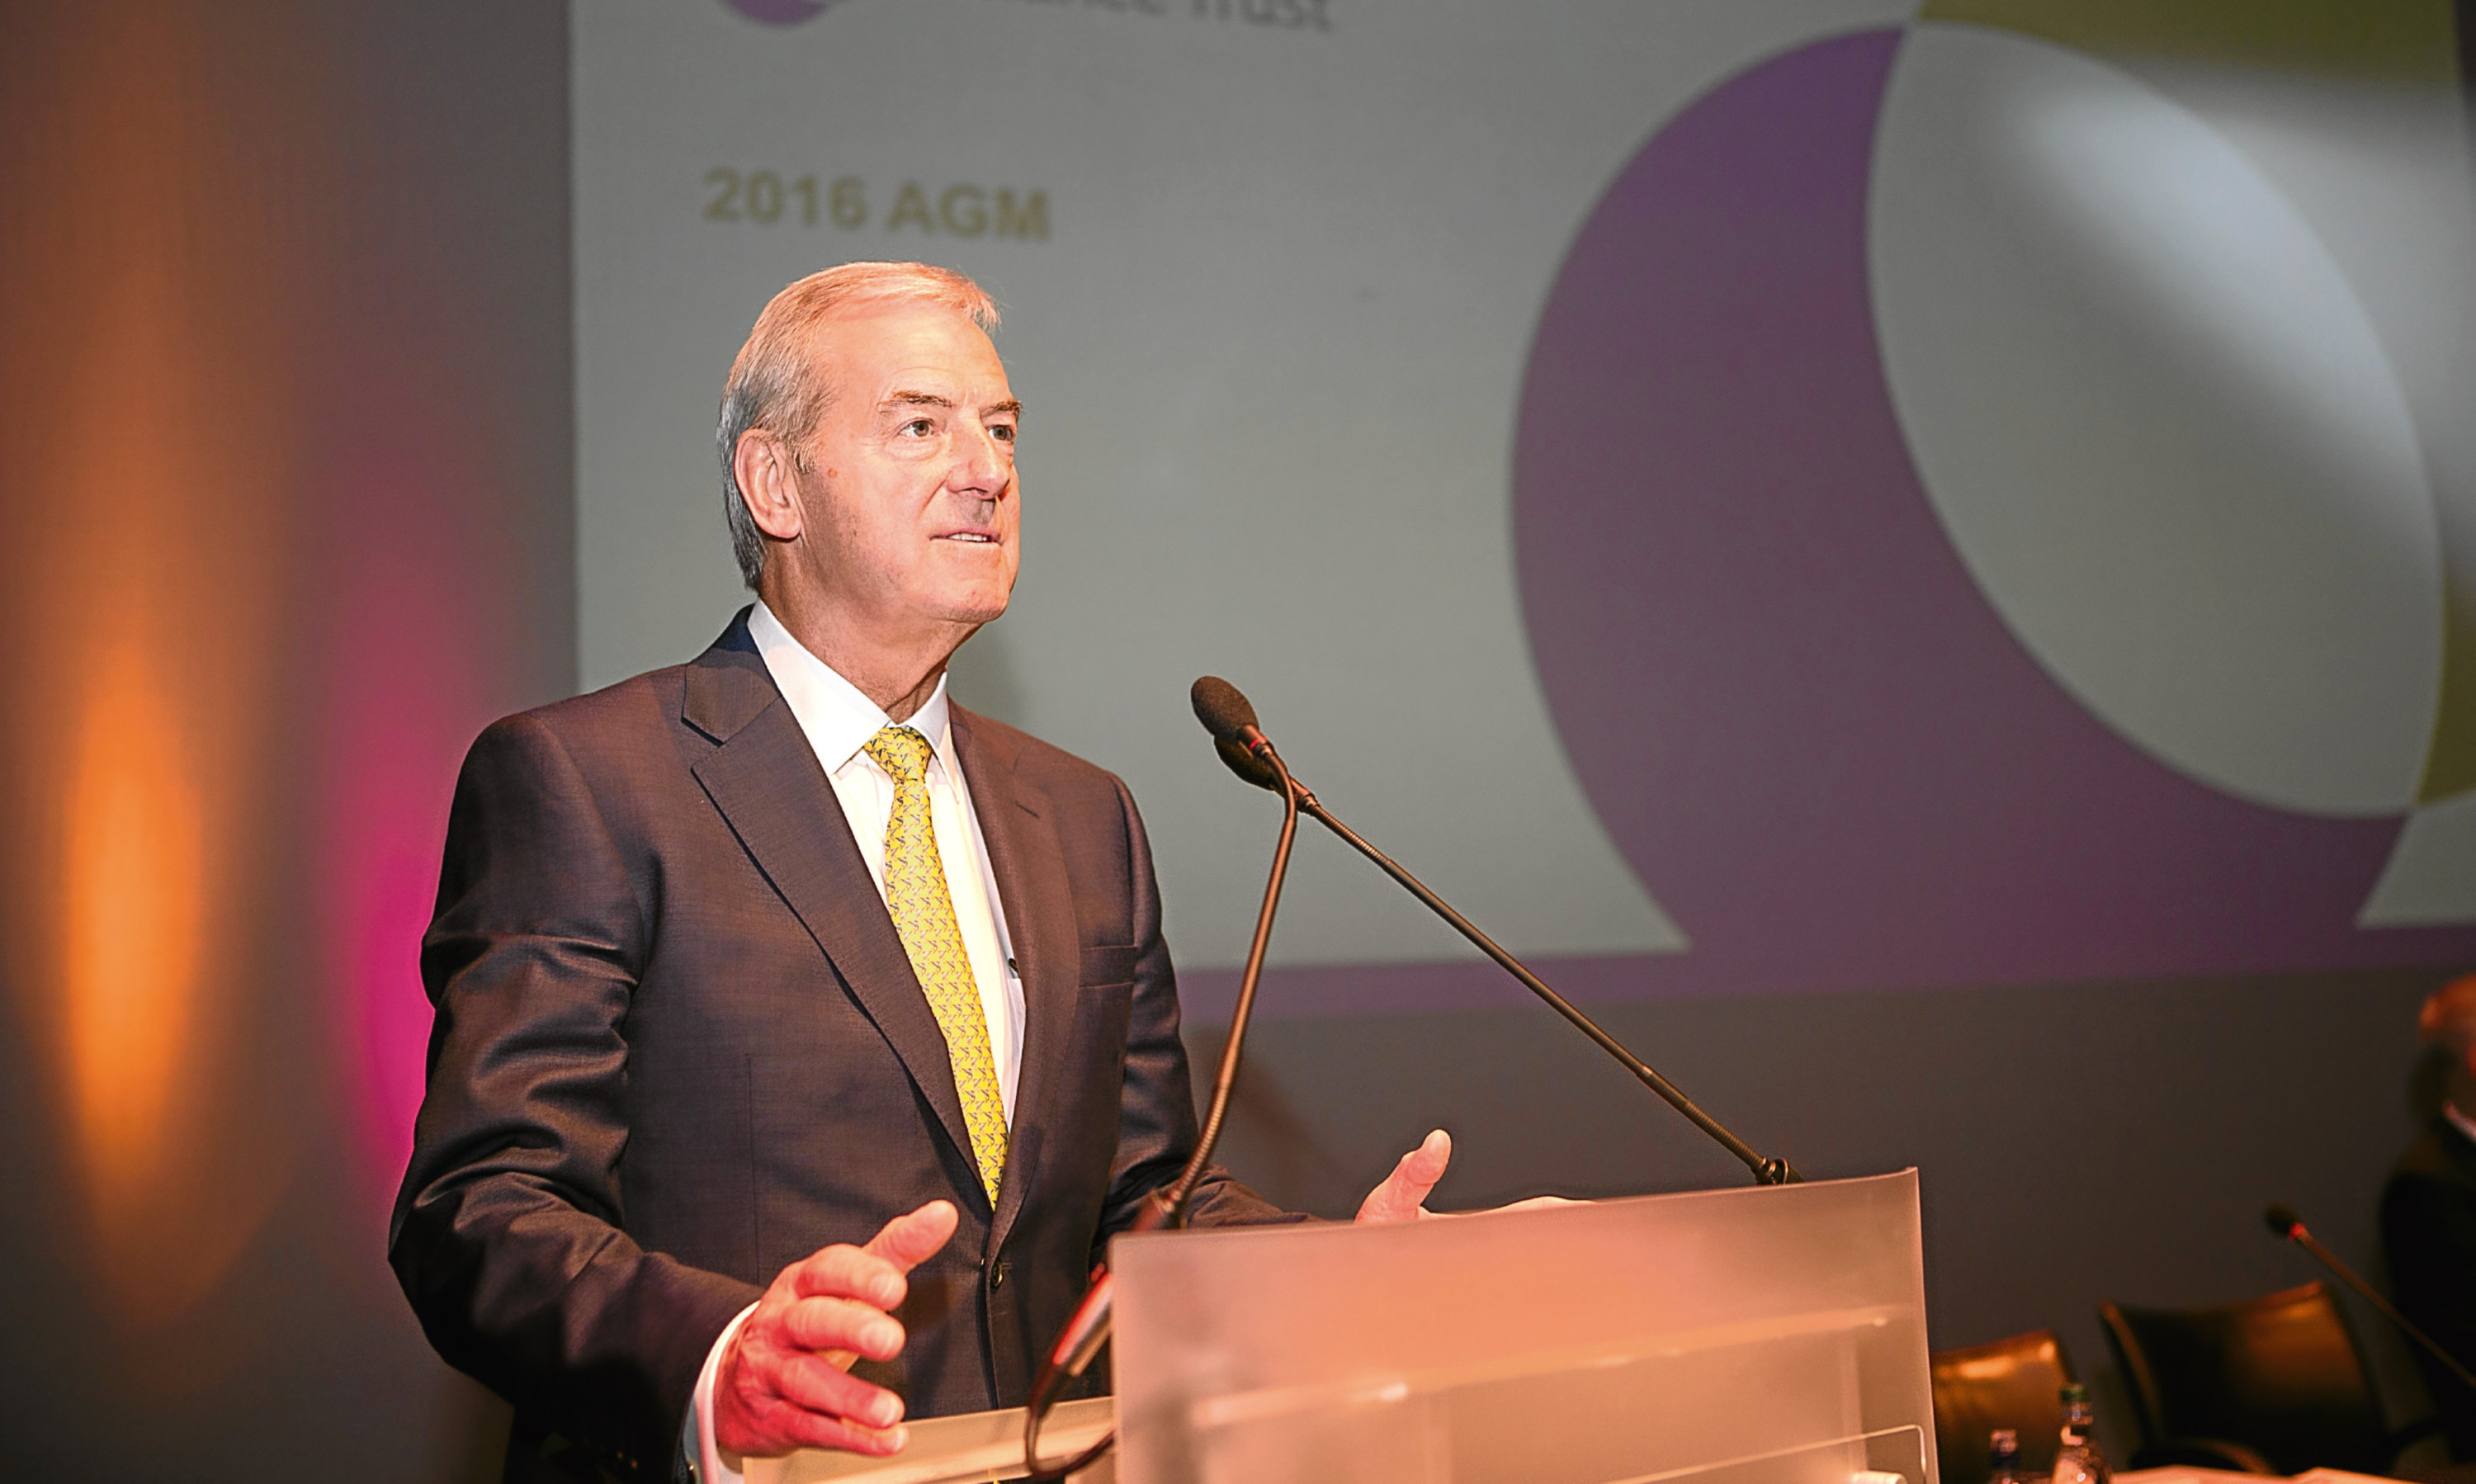 Lord Smith of Kelvin  addresses shareholders at the Alliance Trust AGM